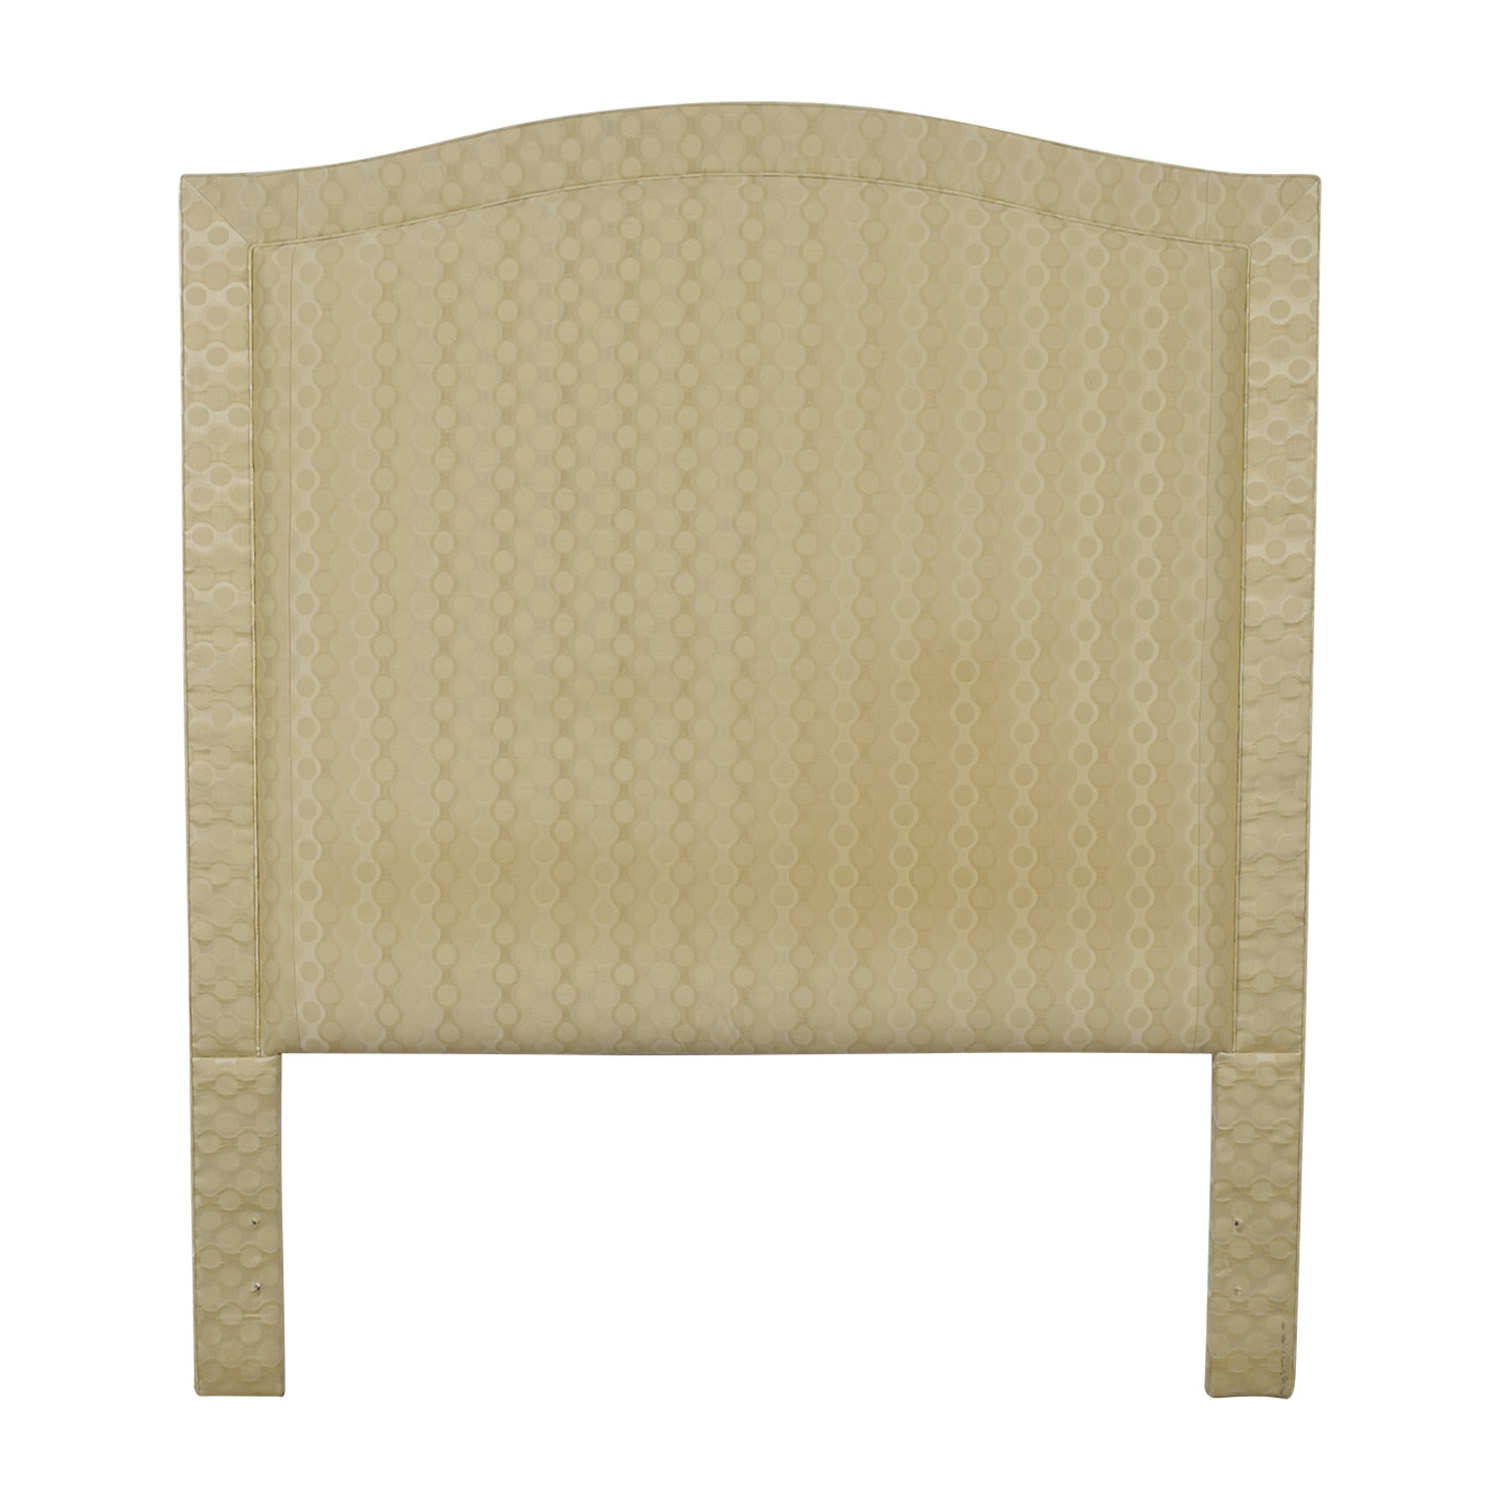 Beige Upholstered Queen Headboard used